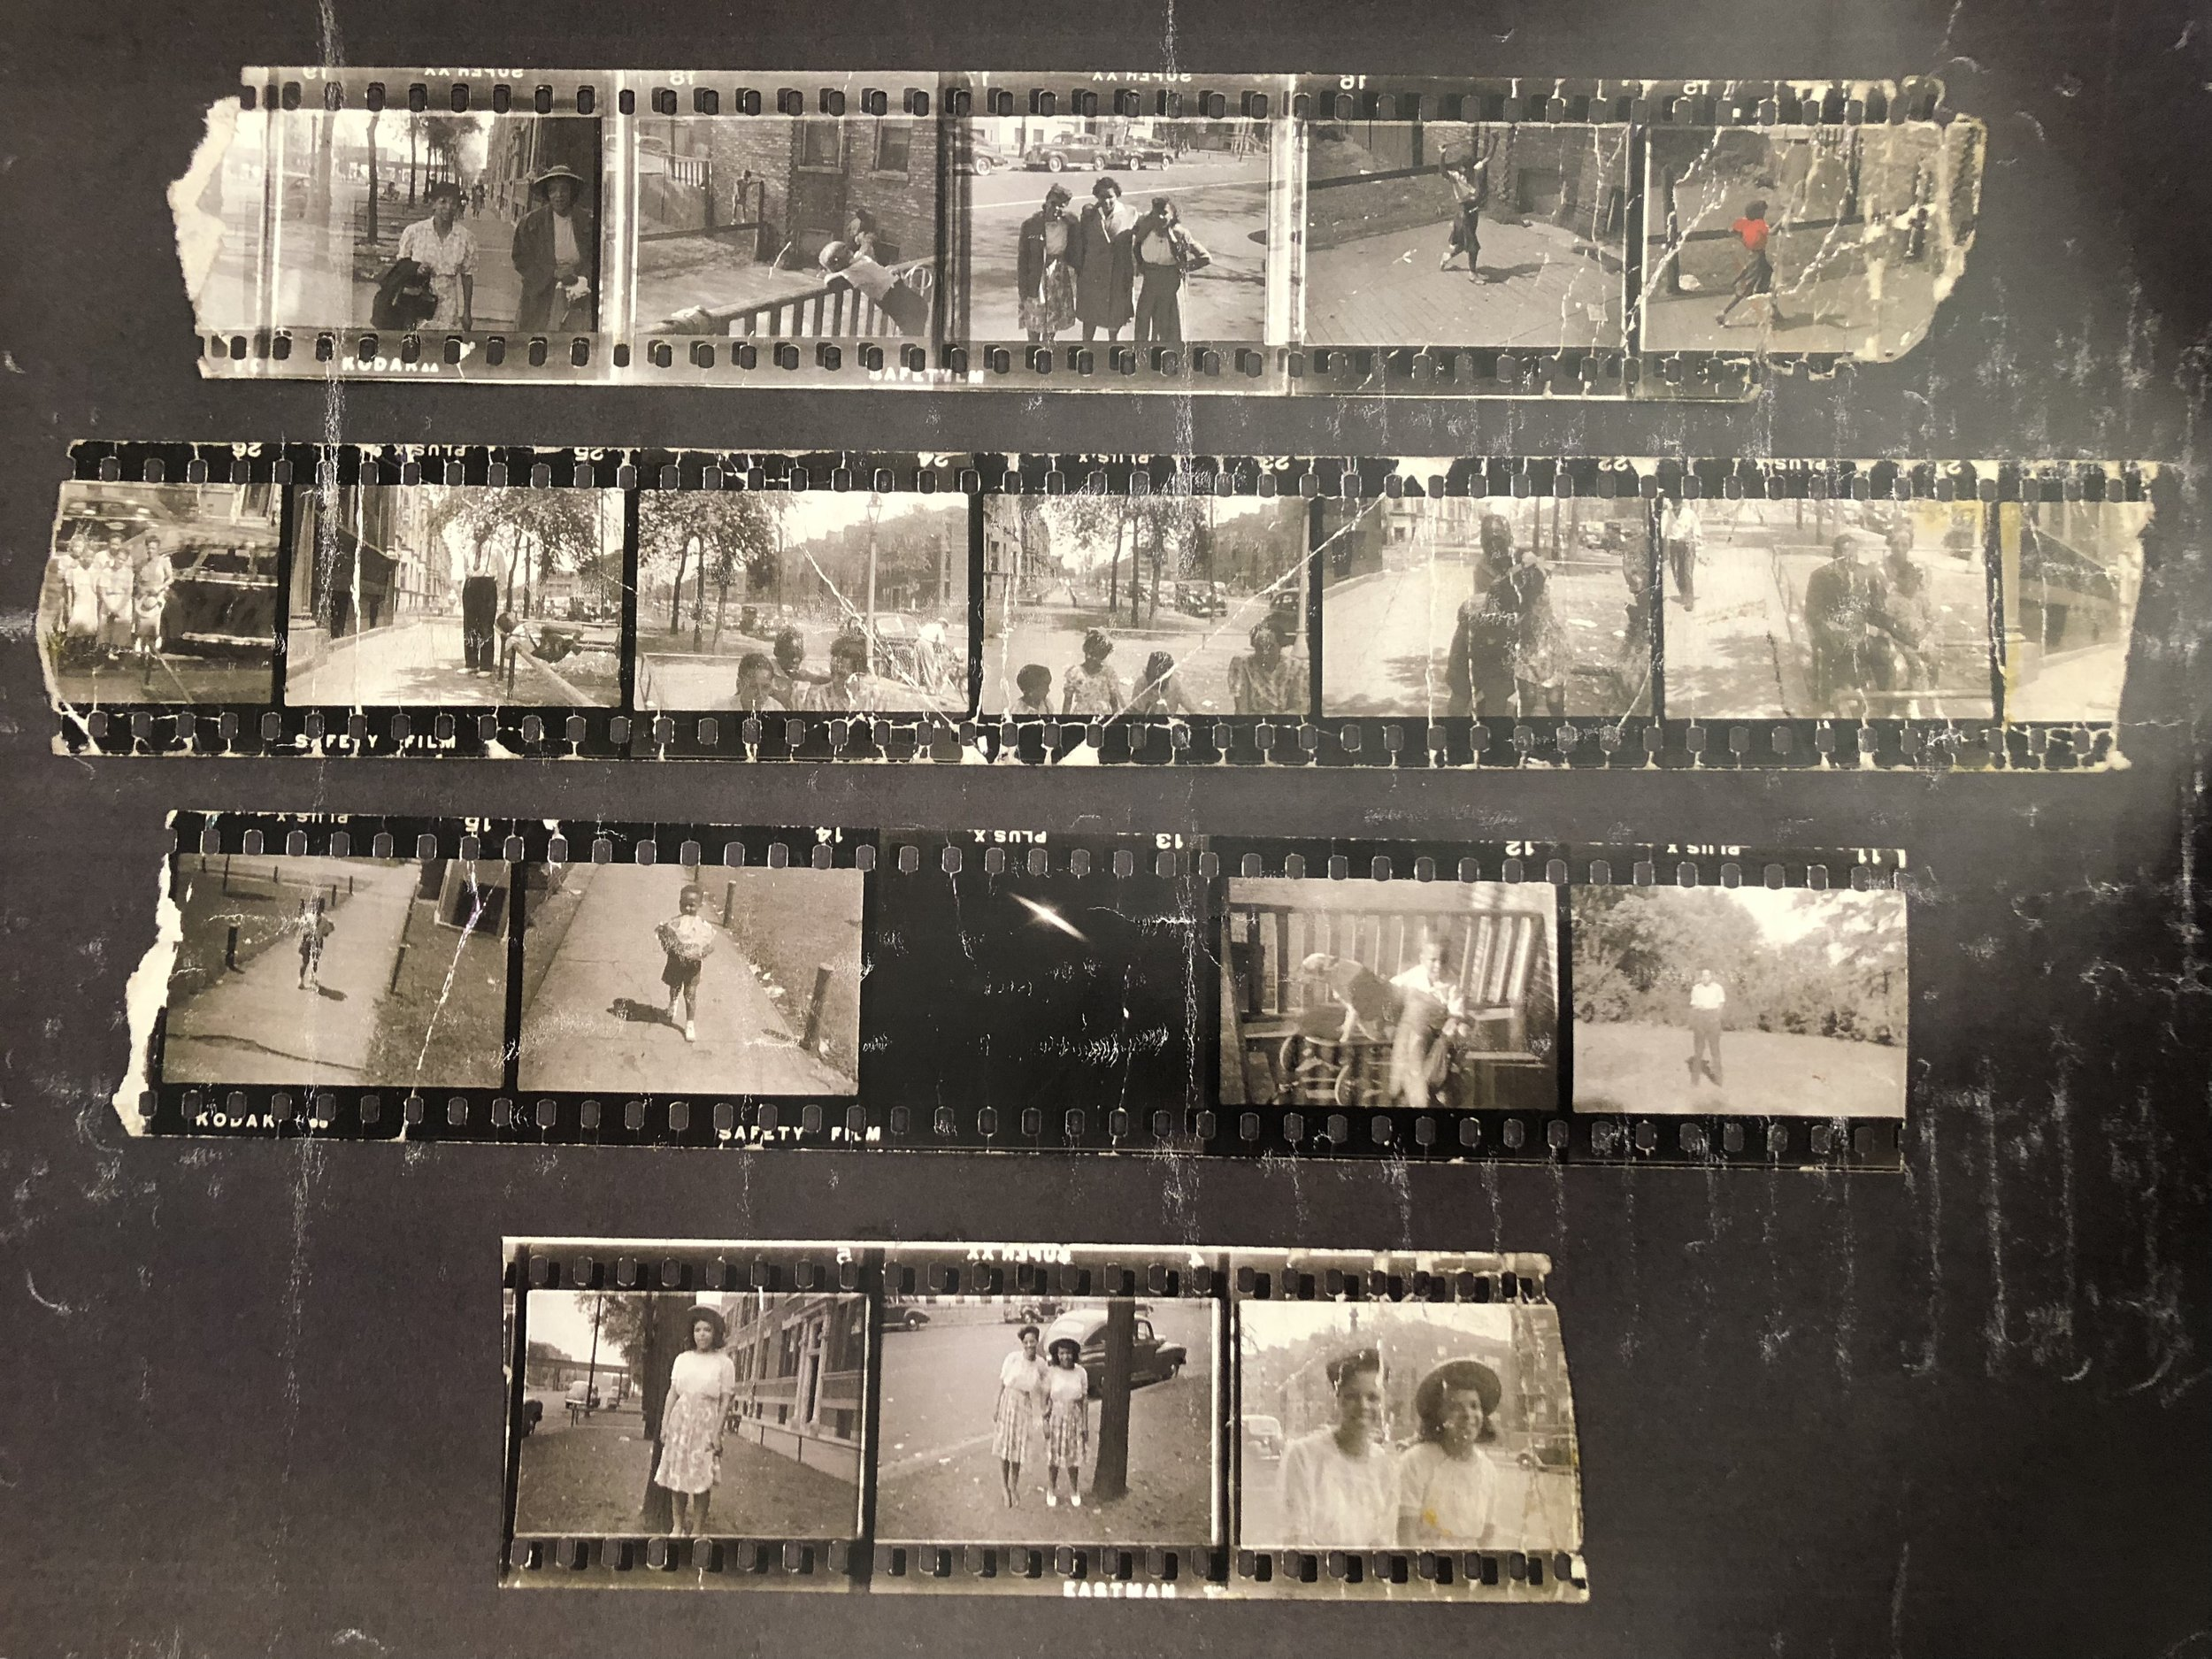 Above: Looking through some images from my paternal grandpa's family archives from his upbringing in Chicago.